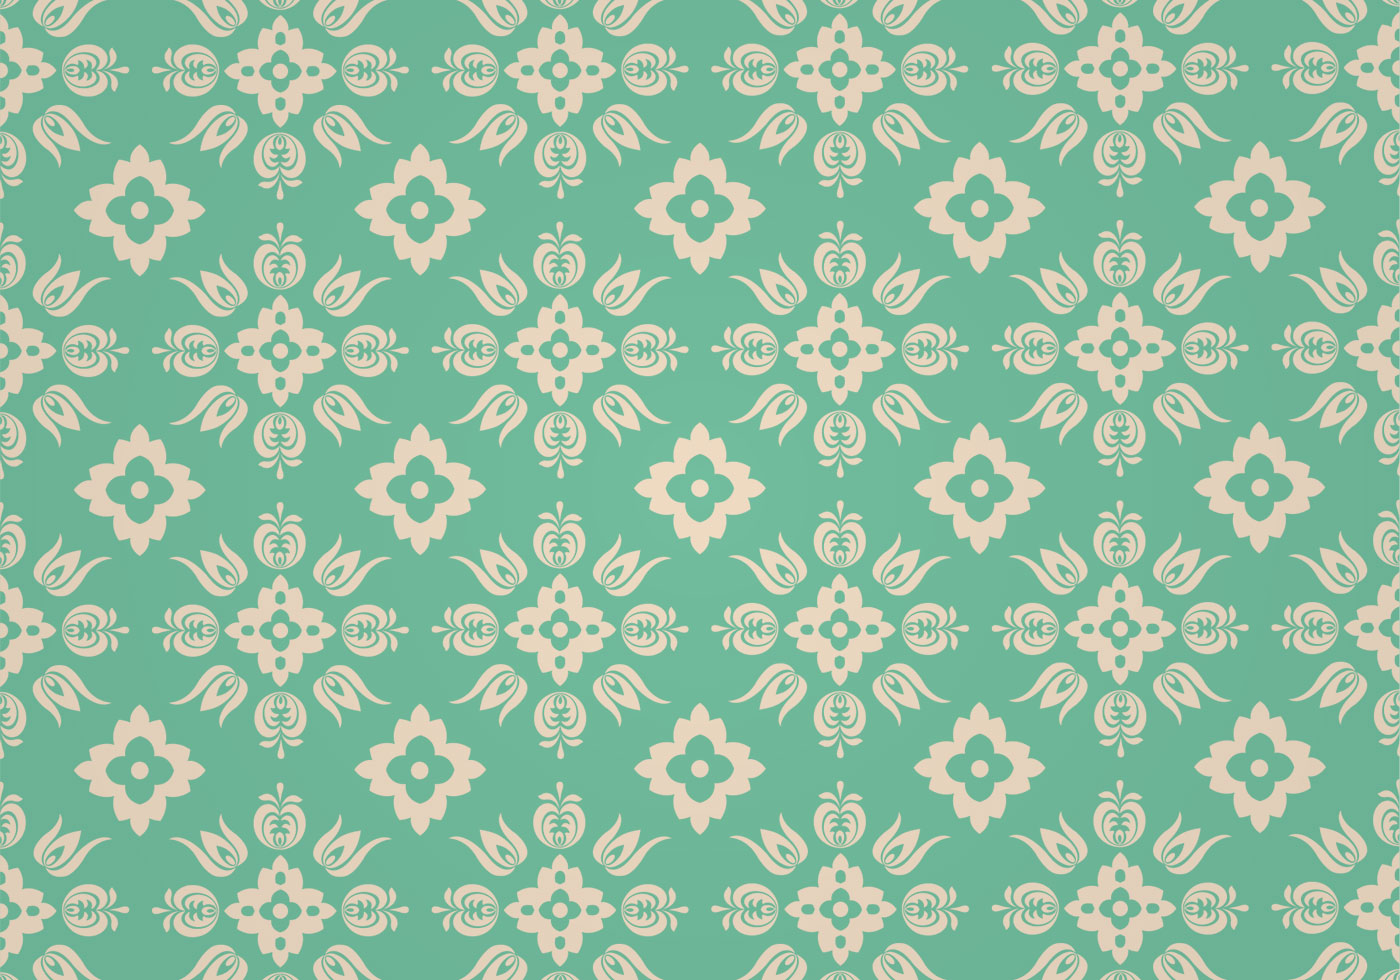 Green Floral Vector Pattern Download Free Vector Art